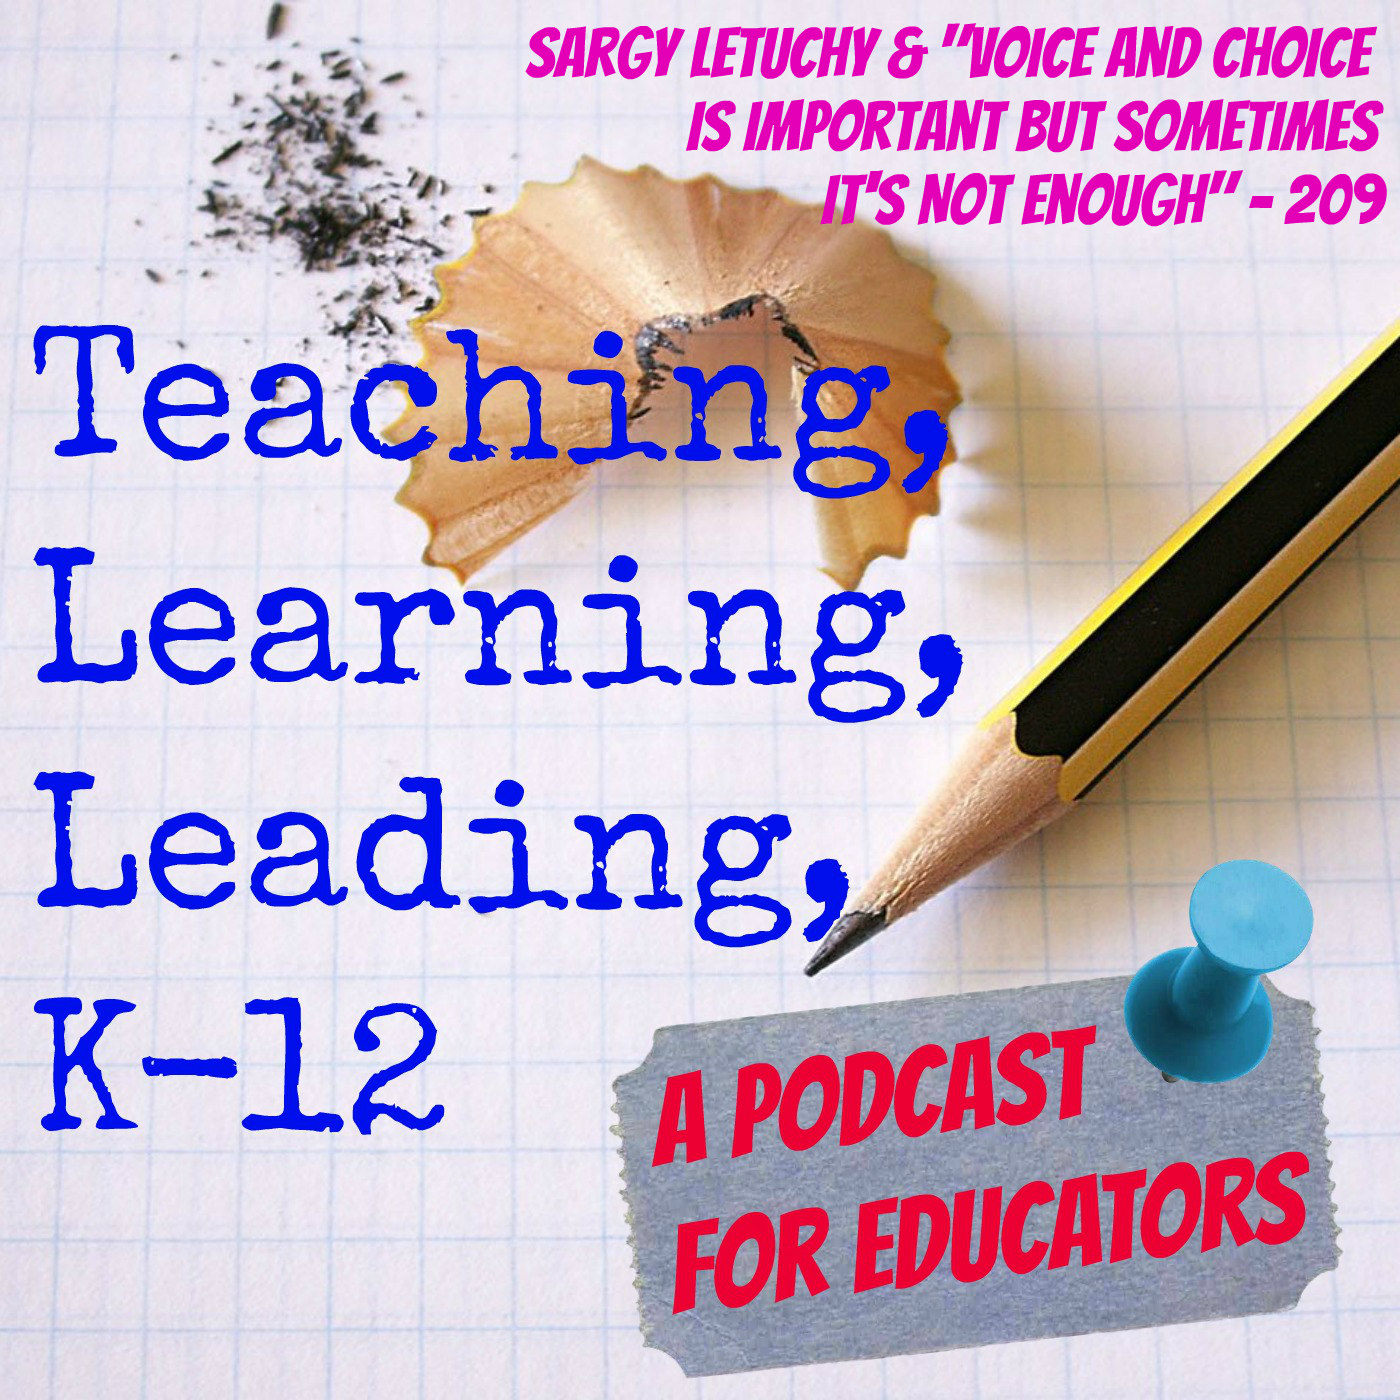 Sargy Letuchy & Voice and Choice is Important but Sometimes It's Not Enough - 209